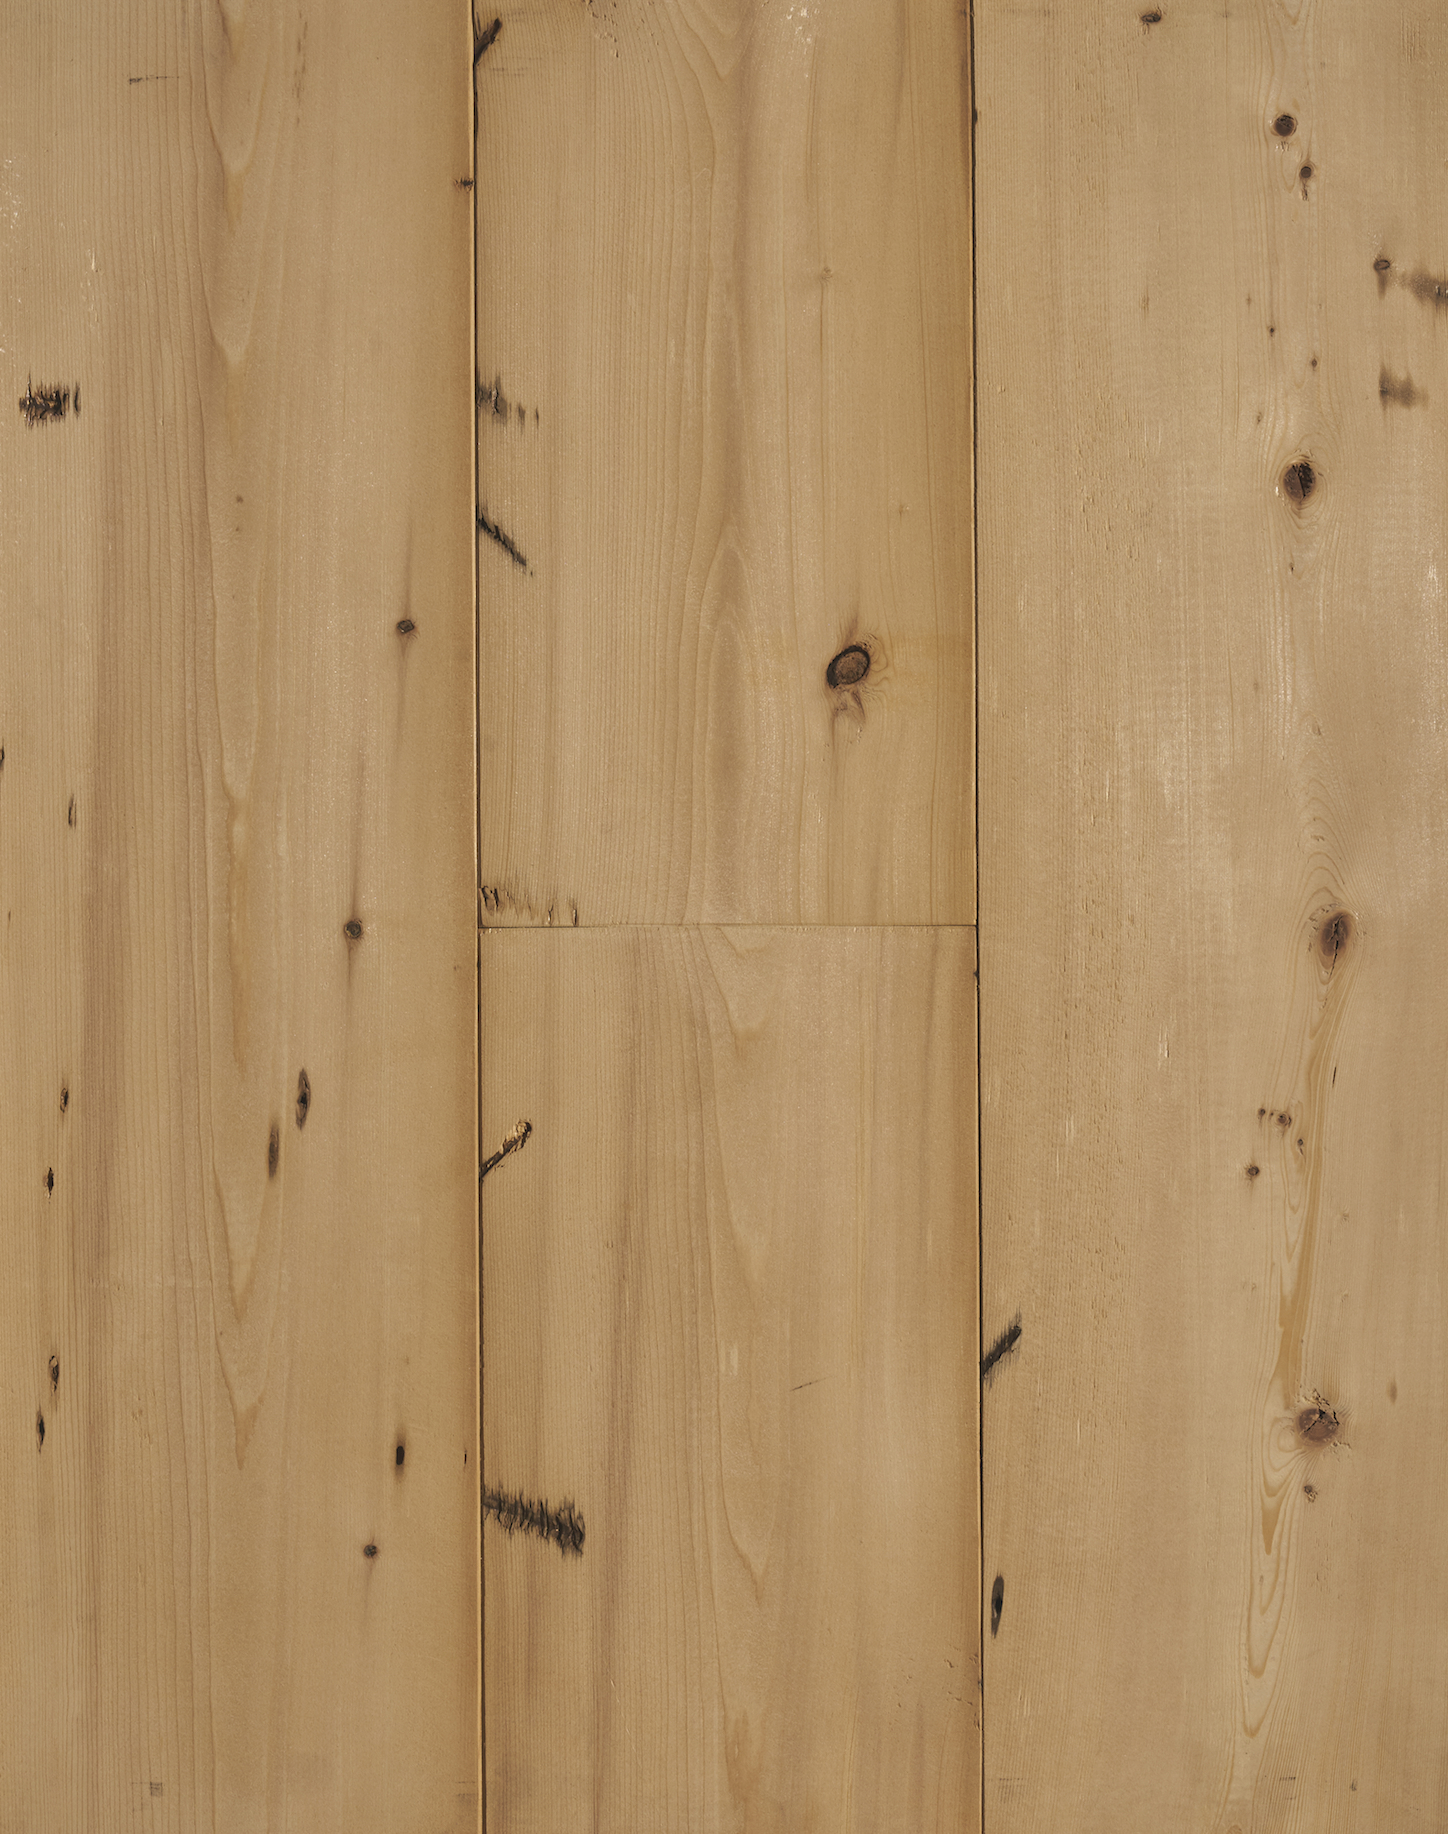 RECLAIMED_MIXED_SOFTWOODS_NEW_FACE_002.jpg